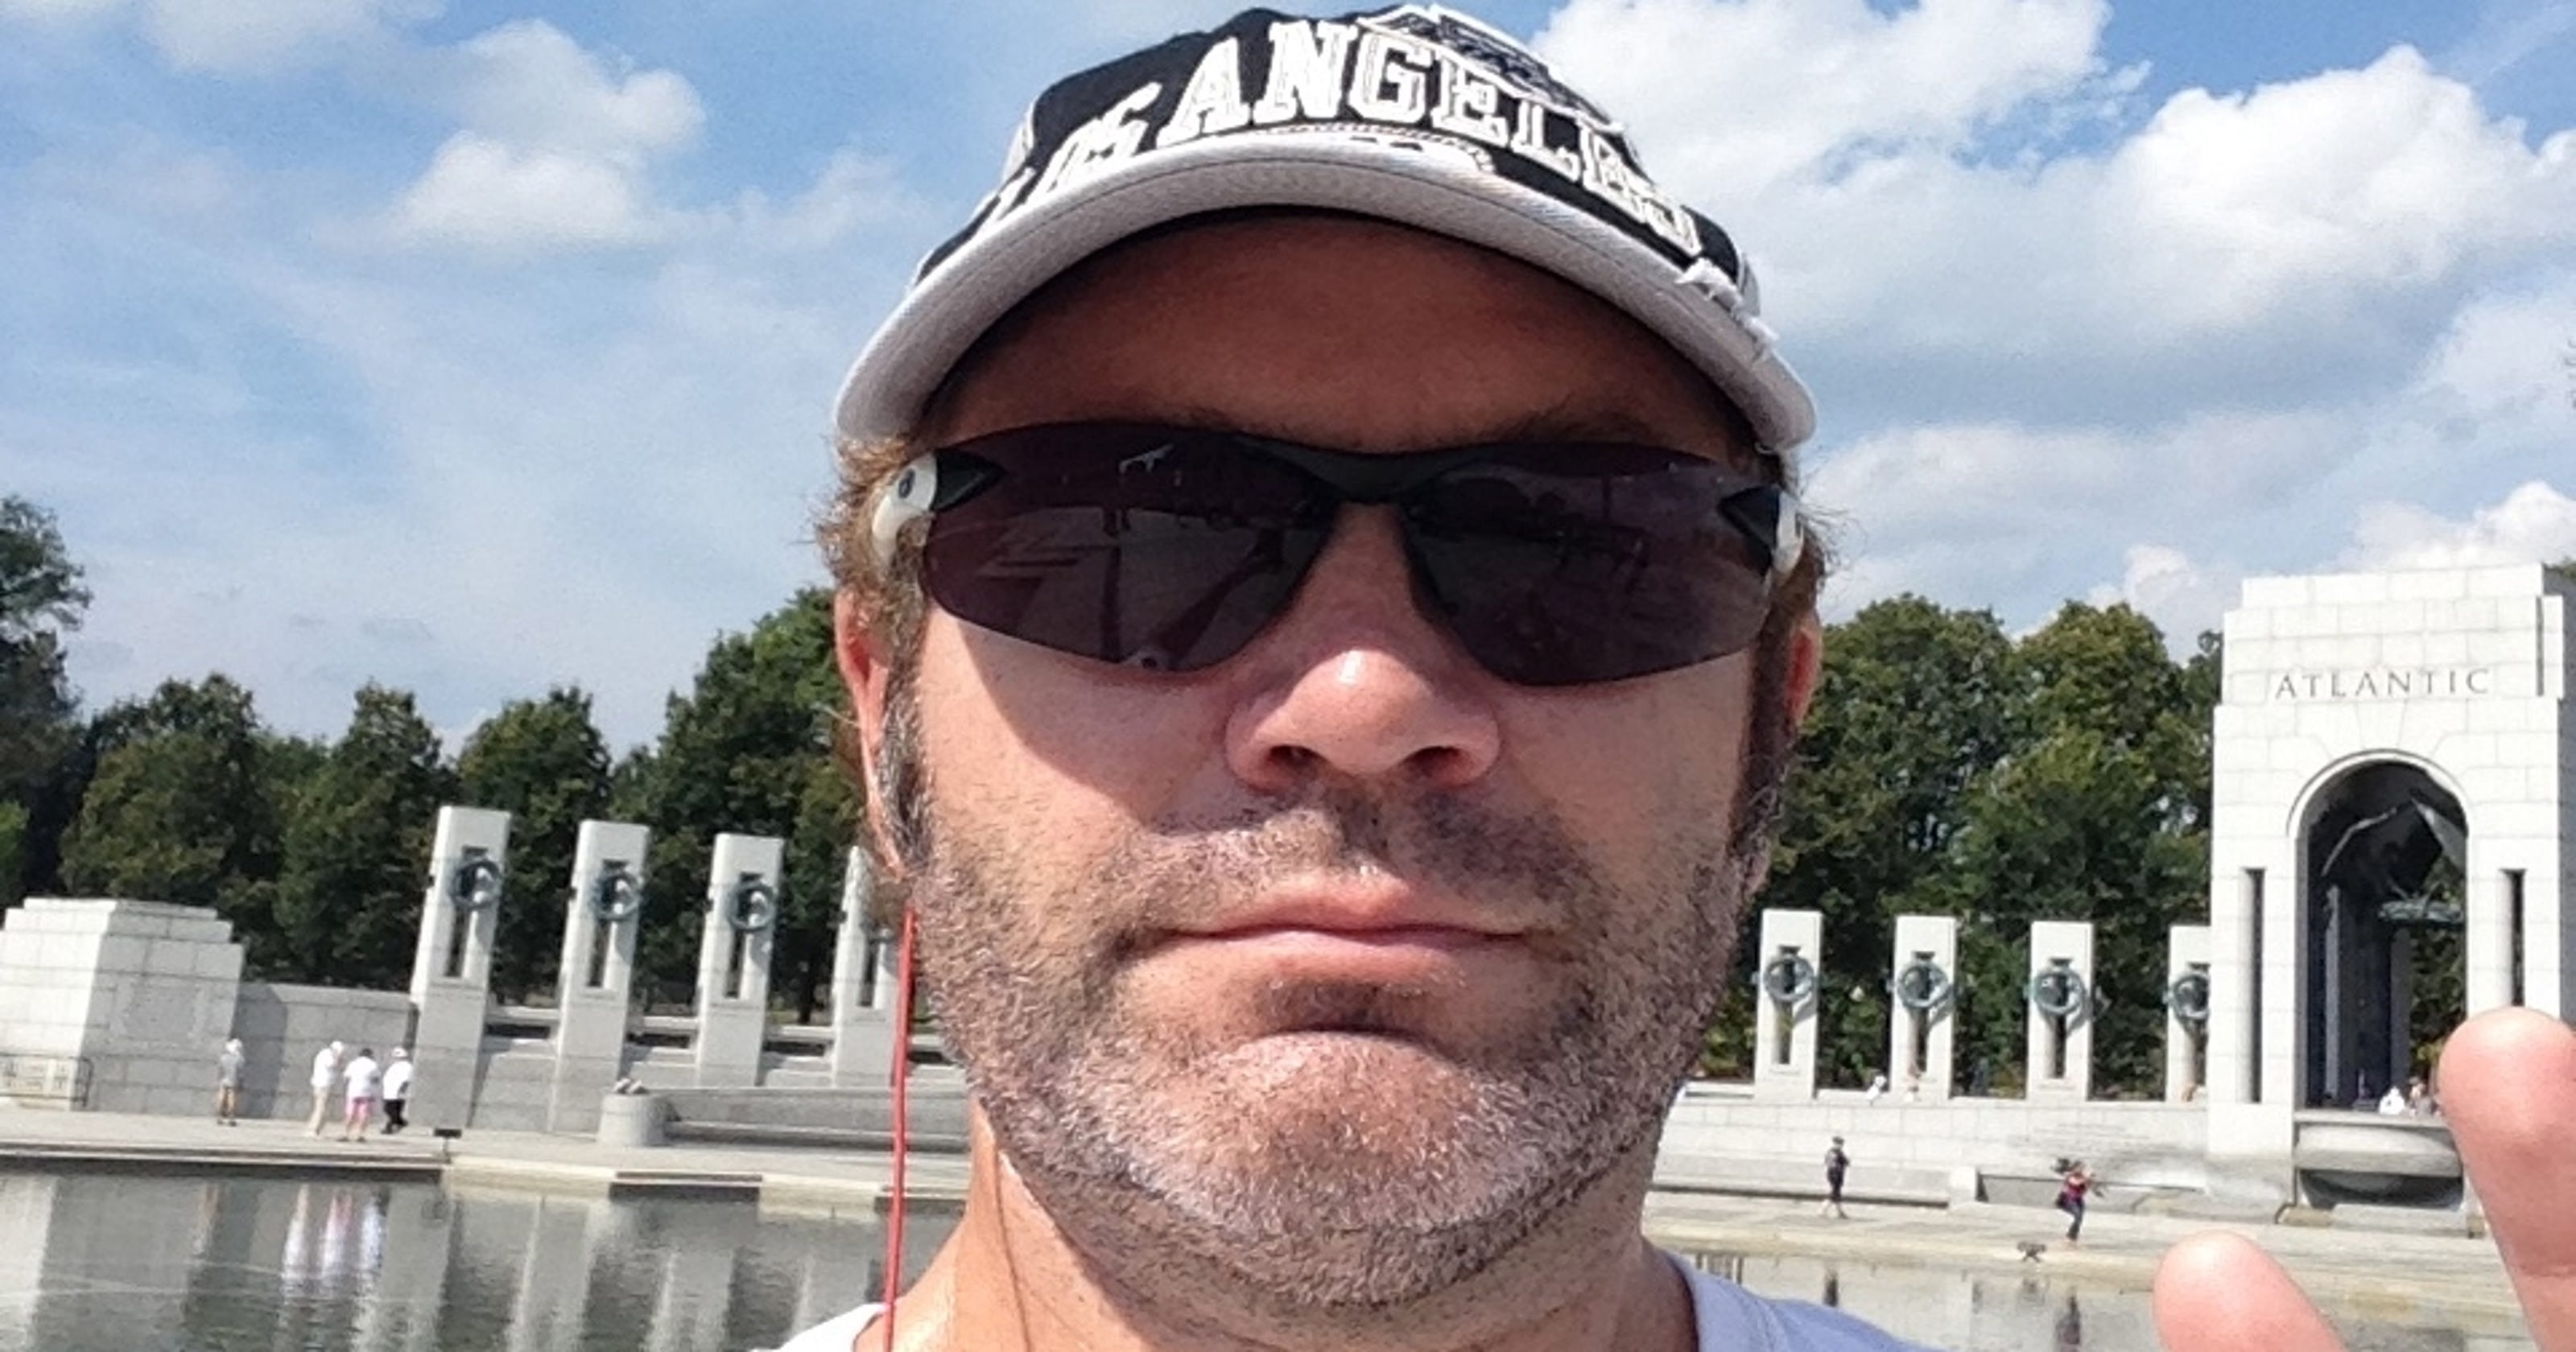 Five for Fighting singer: Booted from Jefferson Memorial